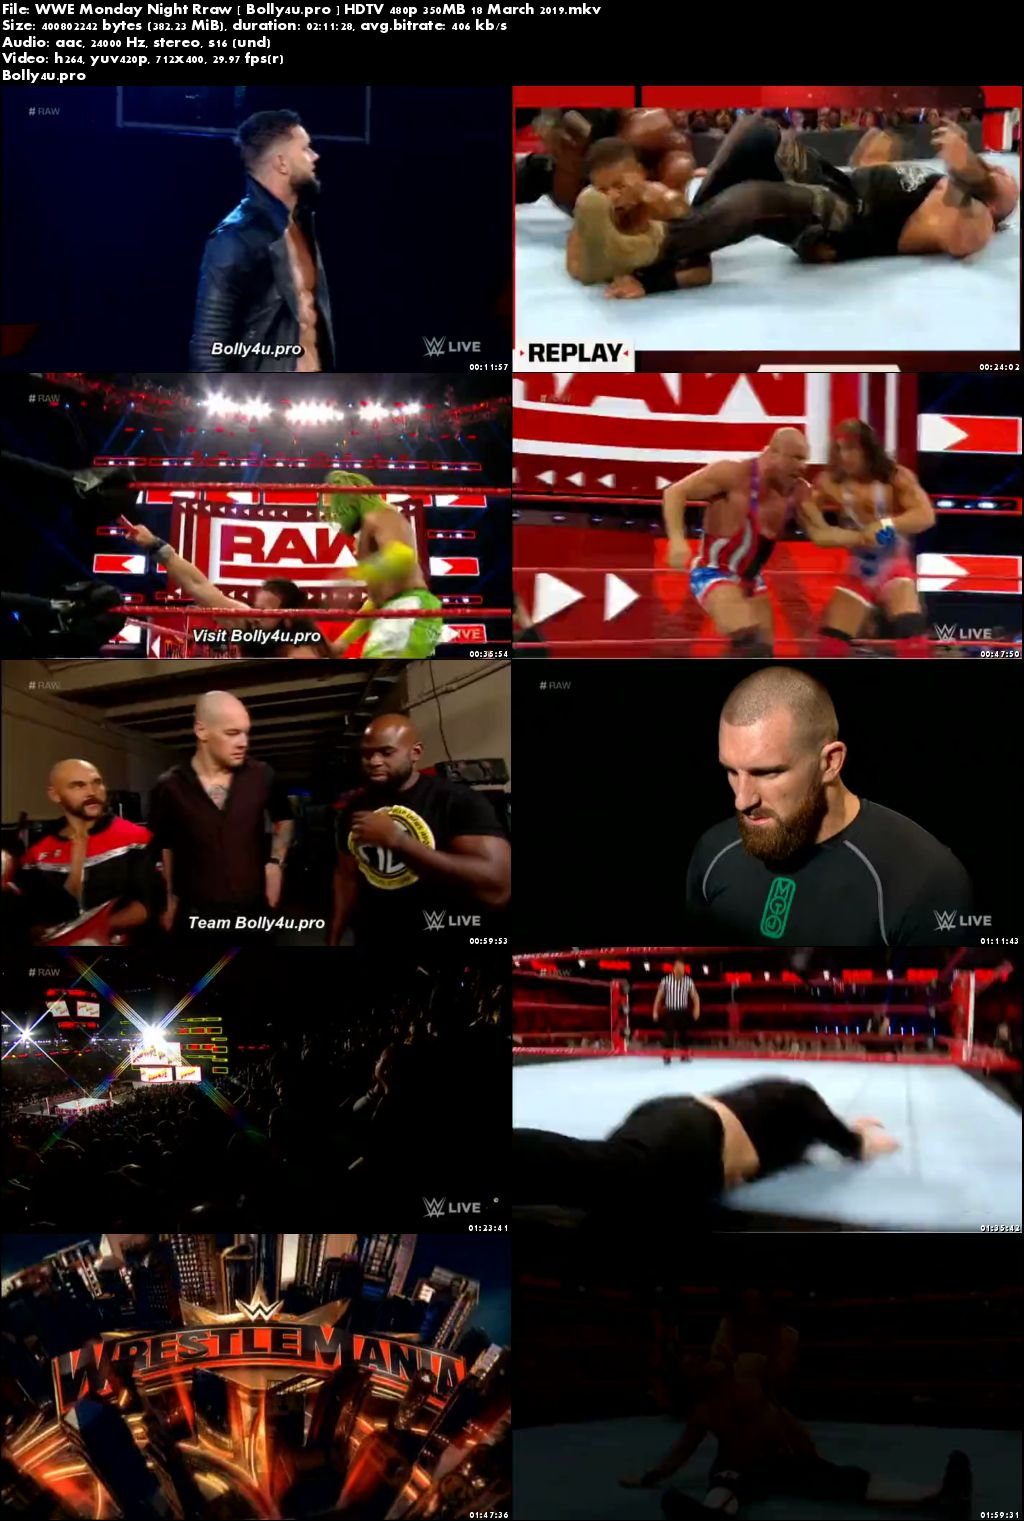 WWE Monday Night Rraw HDTV 480p 350MB 18 March 2019 Download